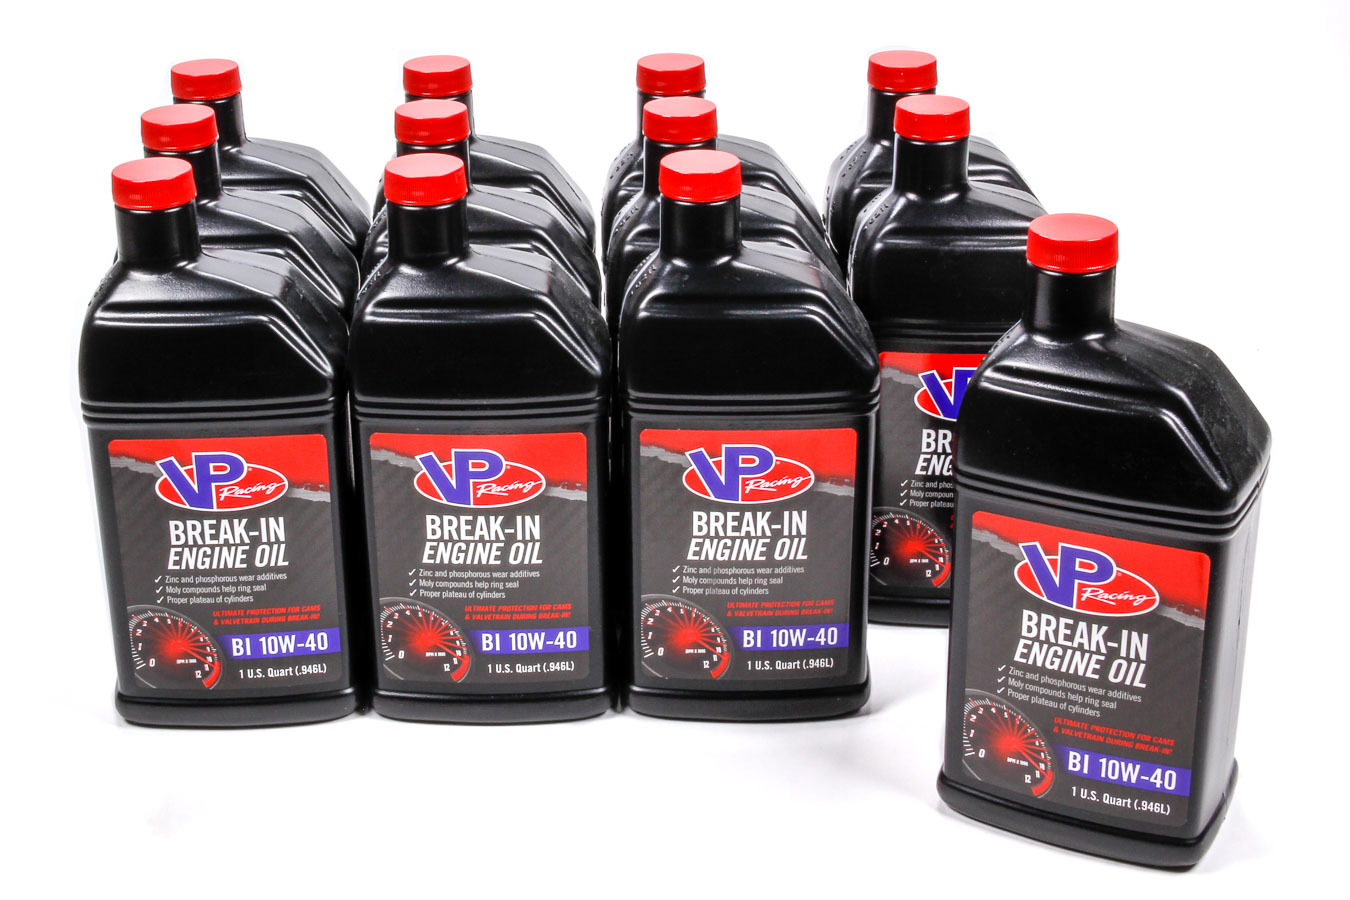 VP Fuel Containers 2417 Motor Oil, Break-In, High Zinc, 10W40, Conventional, 1 qt Bottle, Set of 12